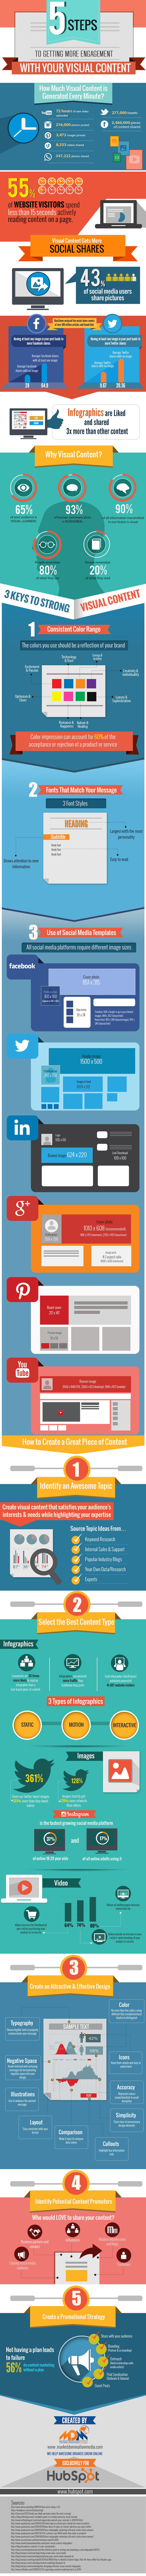 How-to-Increase-Your-Visual-Content-Engagement